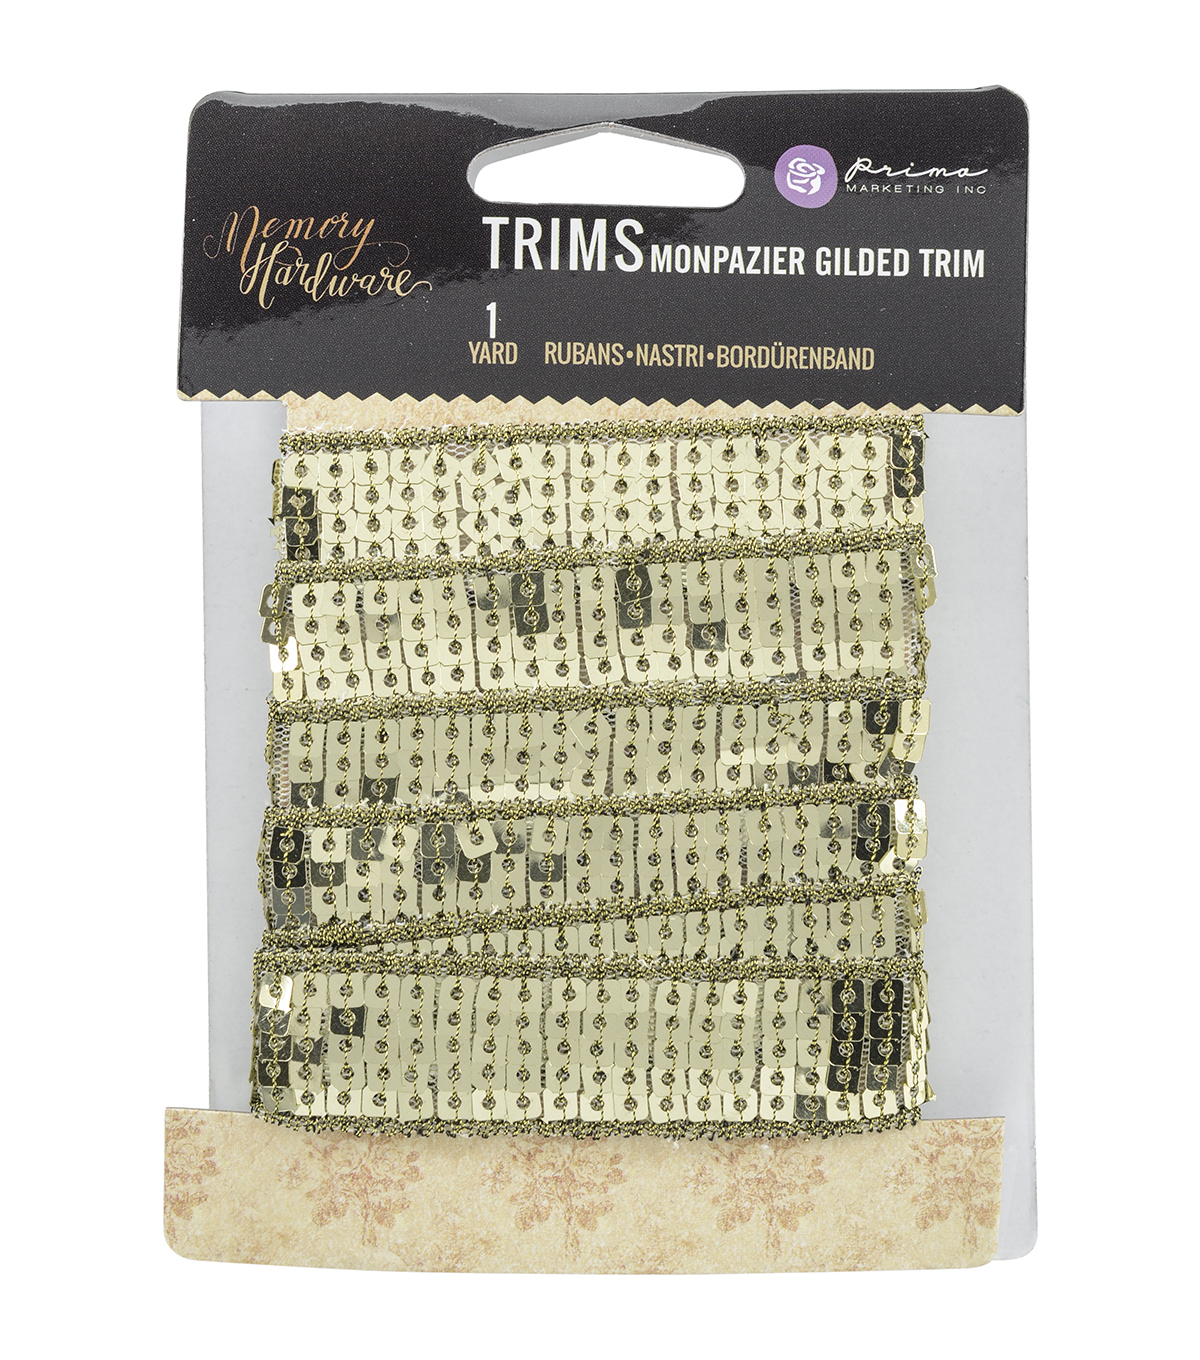 Prima Marketing Memory Hardware Gilded Trim 0.75''x1 yds-Monpazier